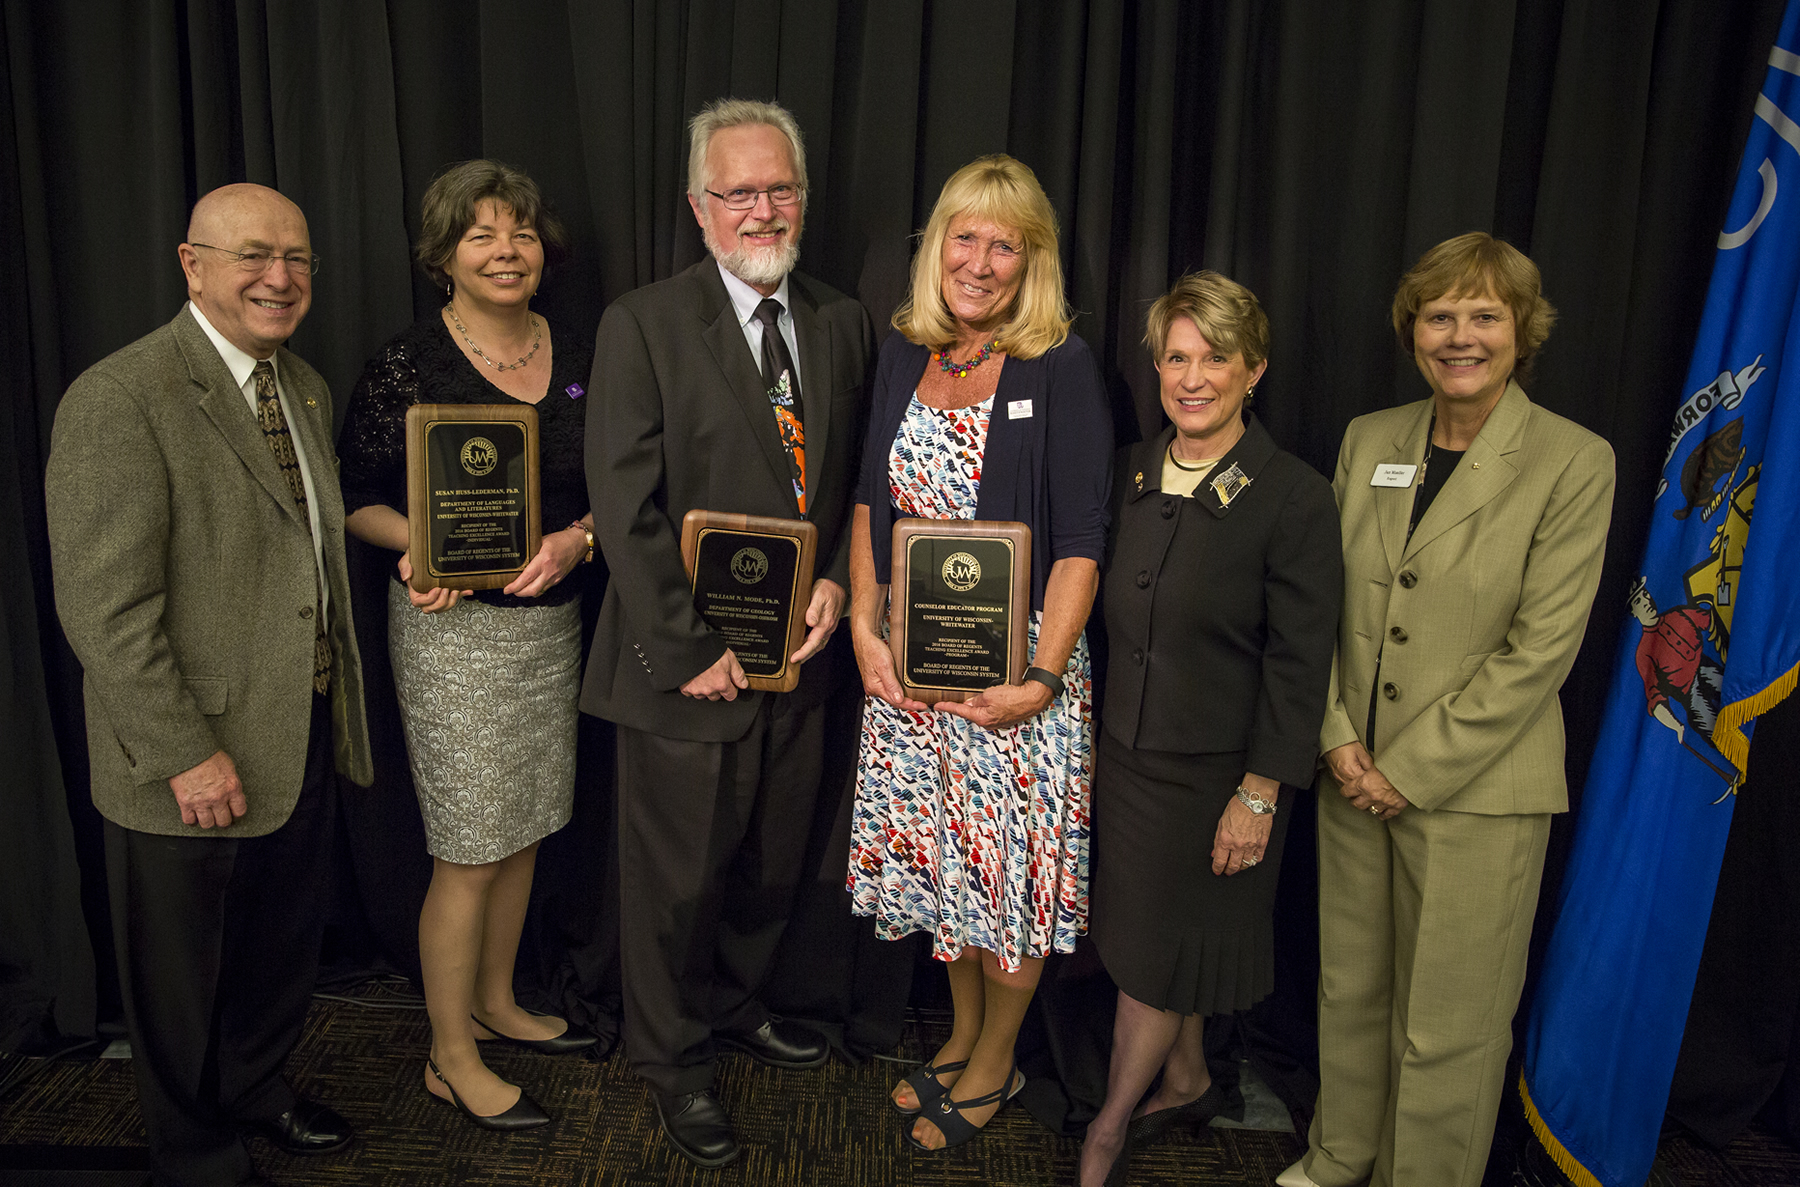 (from left) President Ray Cross, Dr. Susan Huss-Lederman, Dr. William Mode, Dr. Brenda R. O'Beirne, Regent President Regina Millner, and Regent Janice Mueller